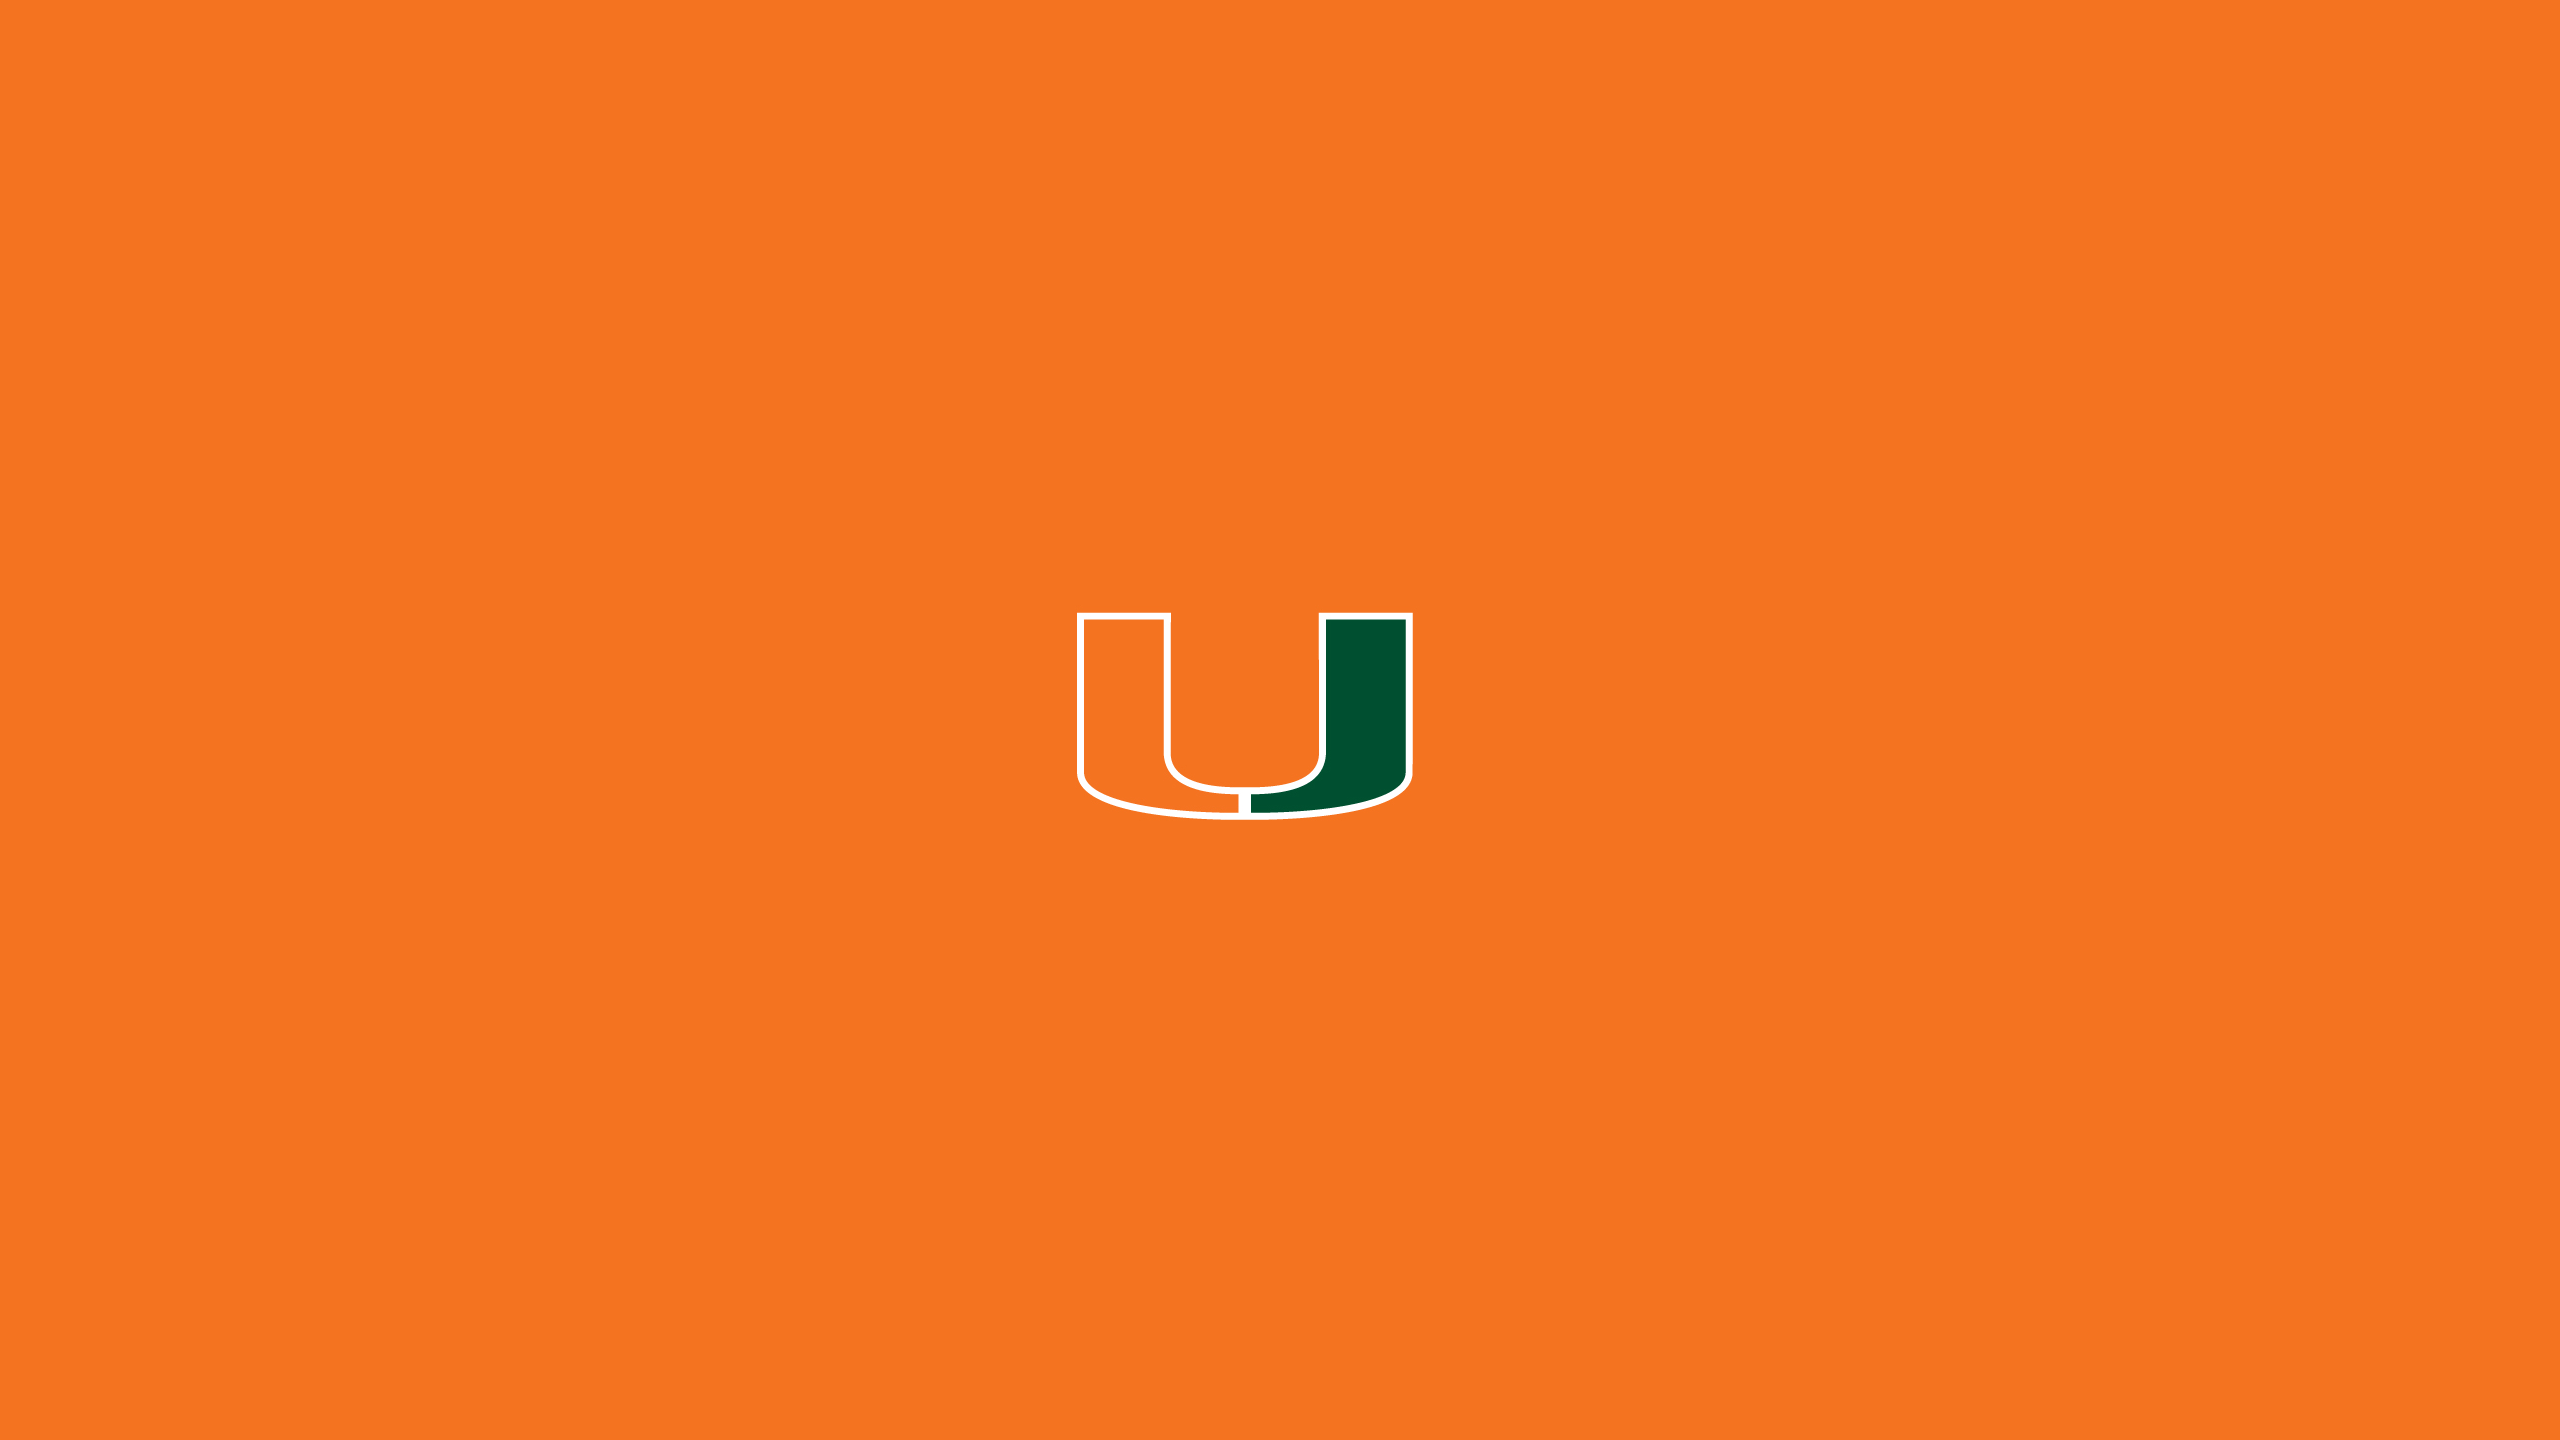 University Of Miami Wallpaper